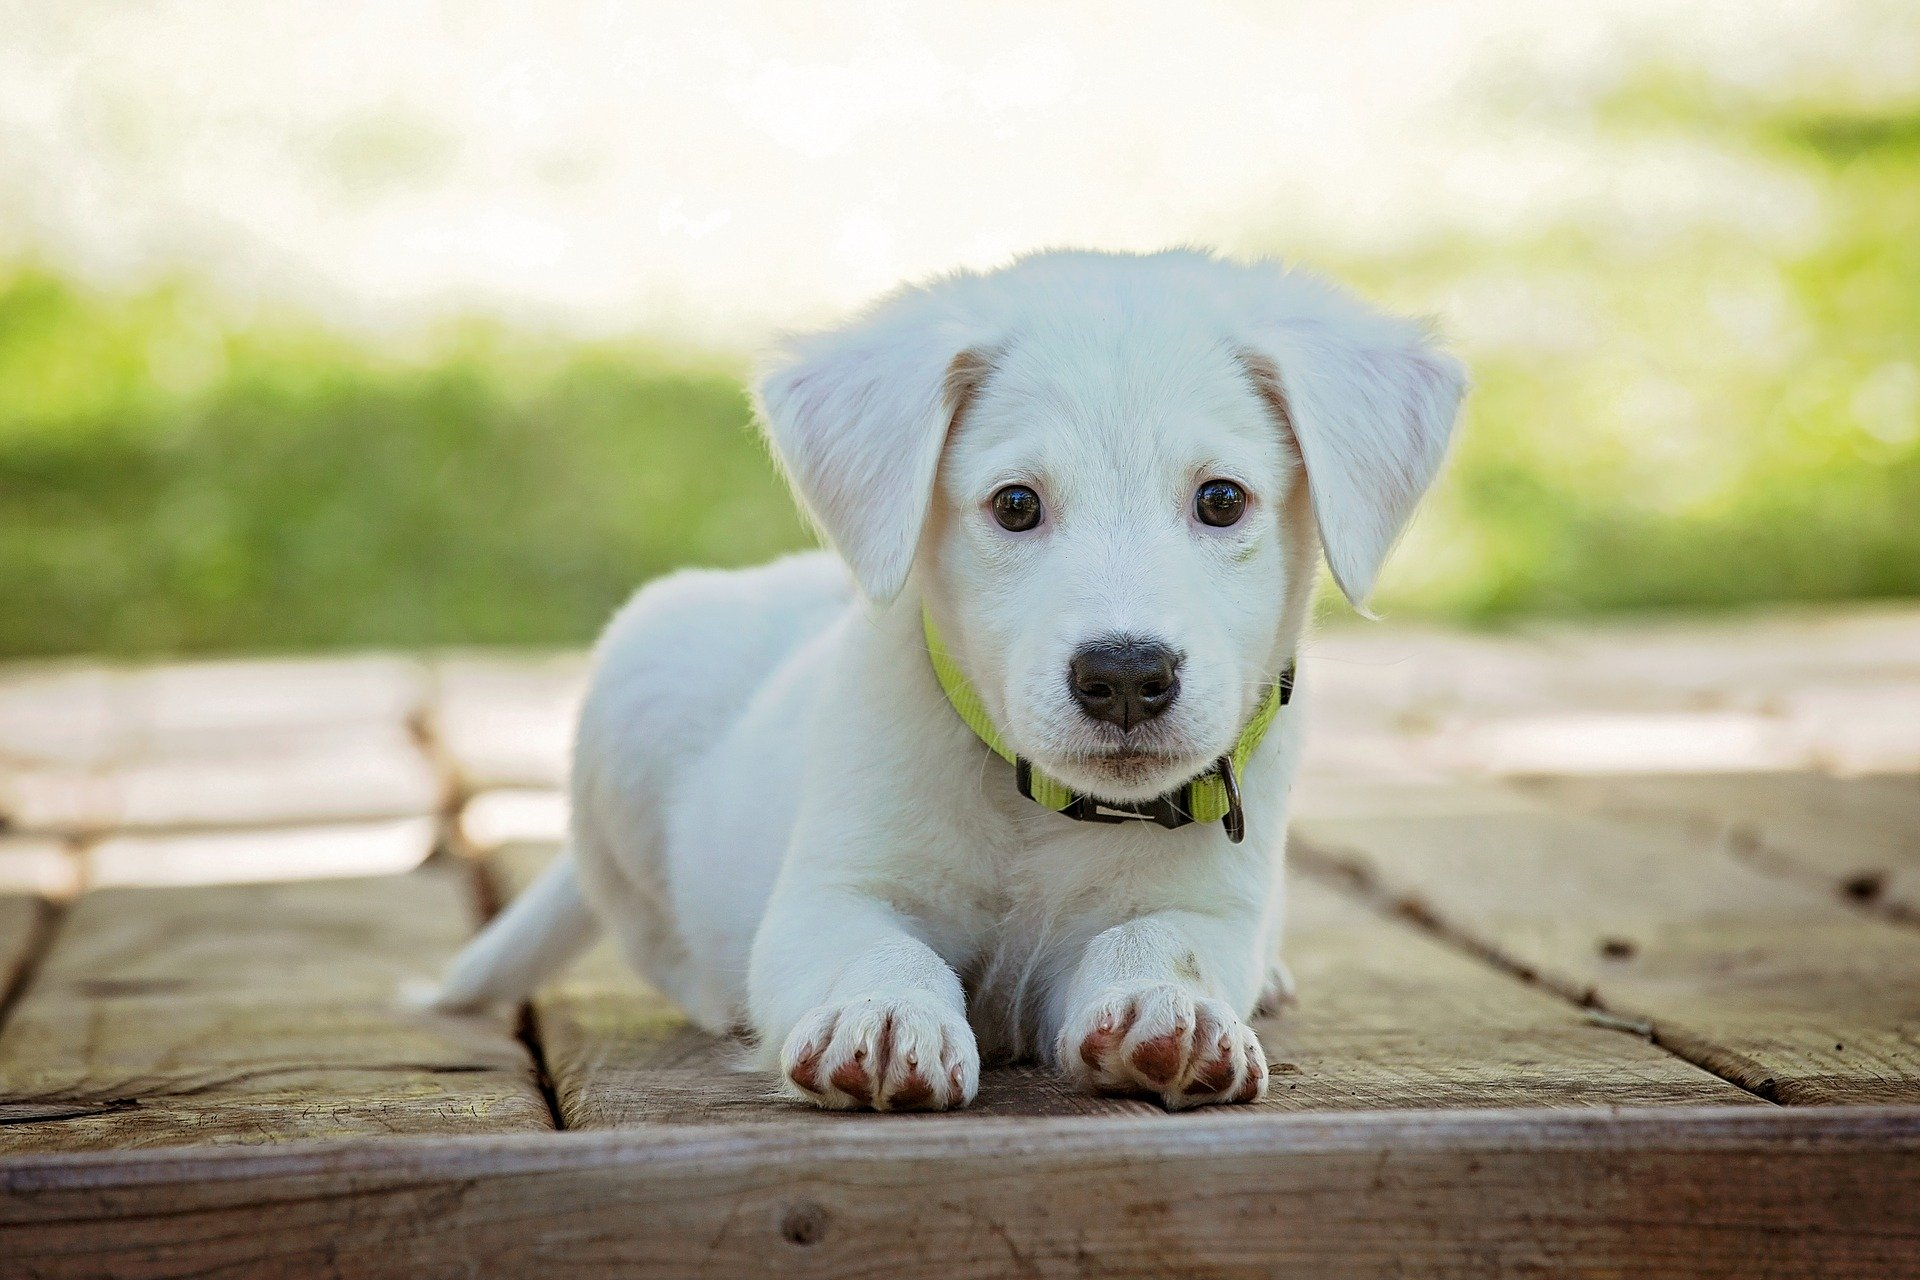 Little white puppy - Socialize your puppy